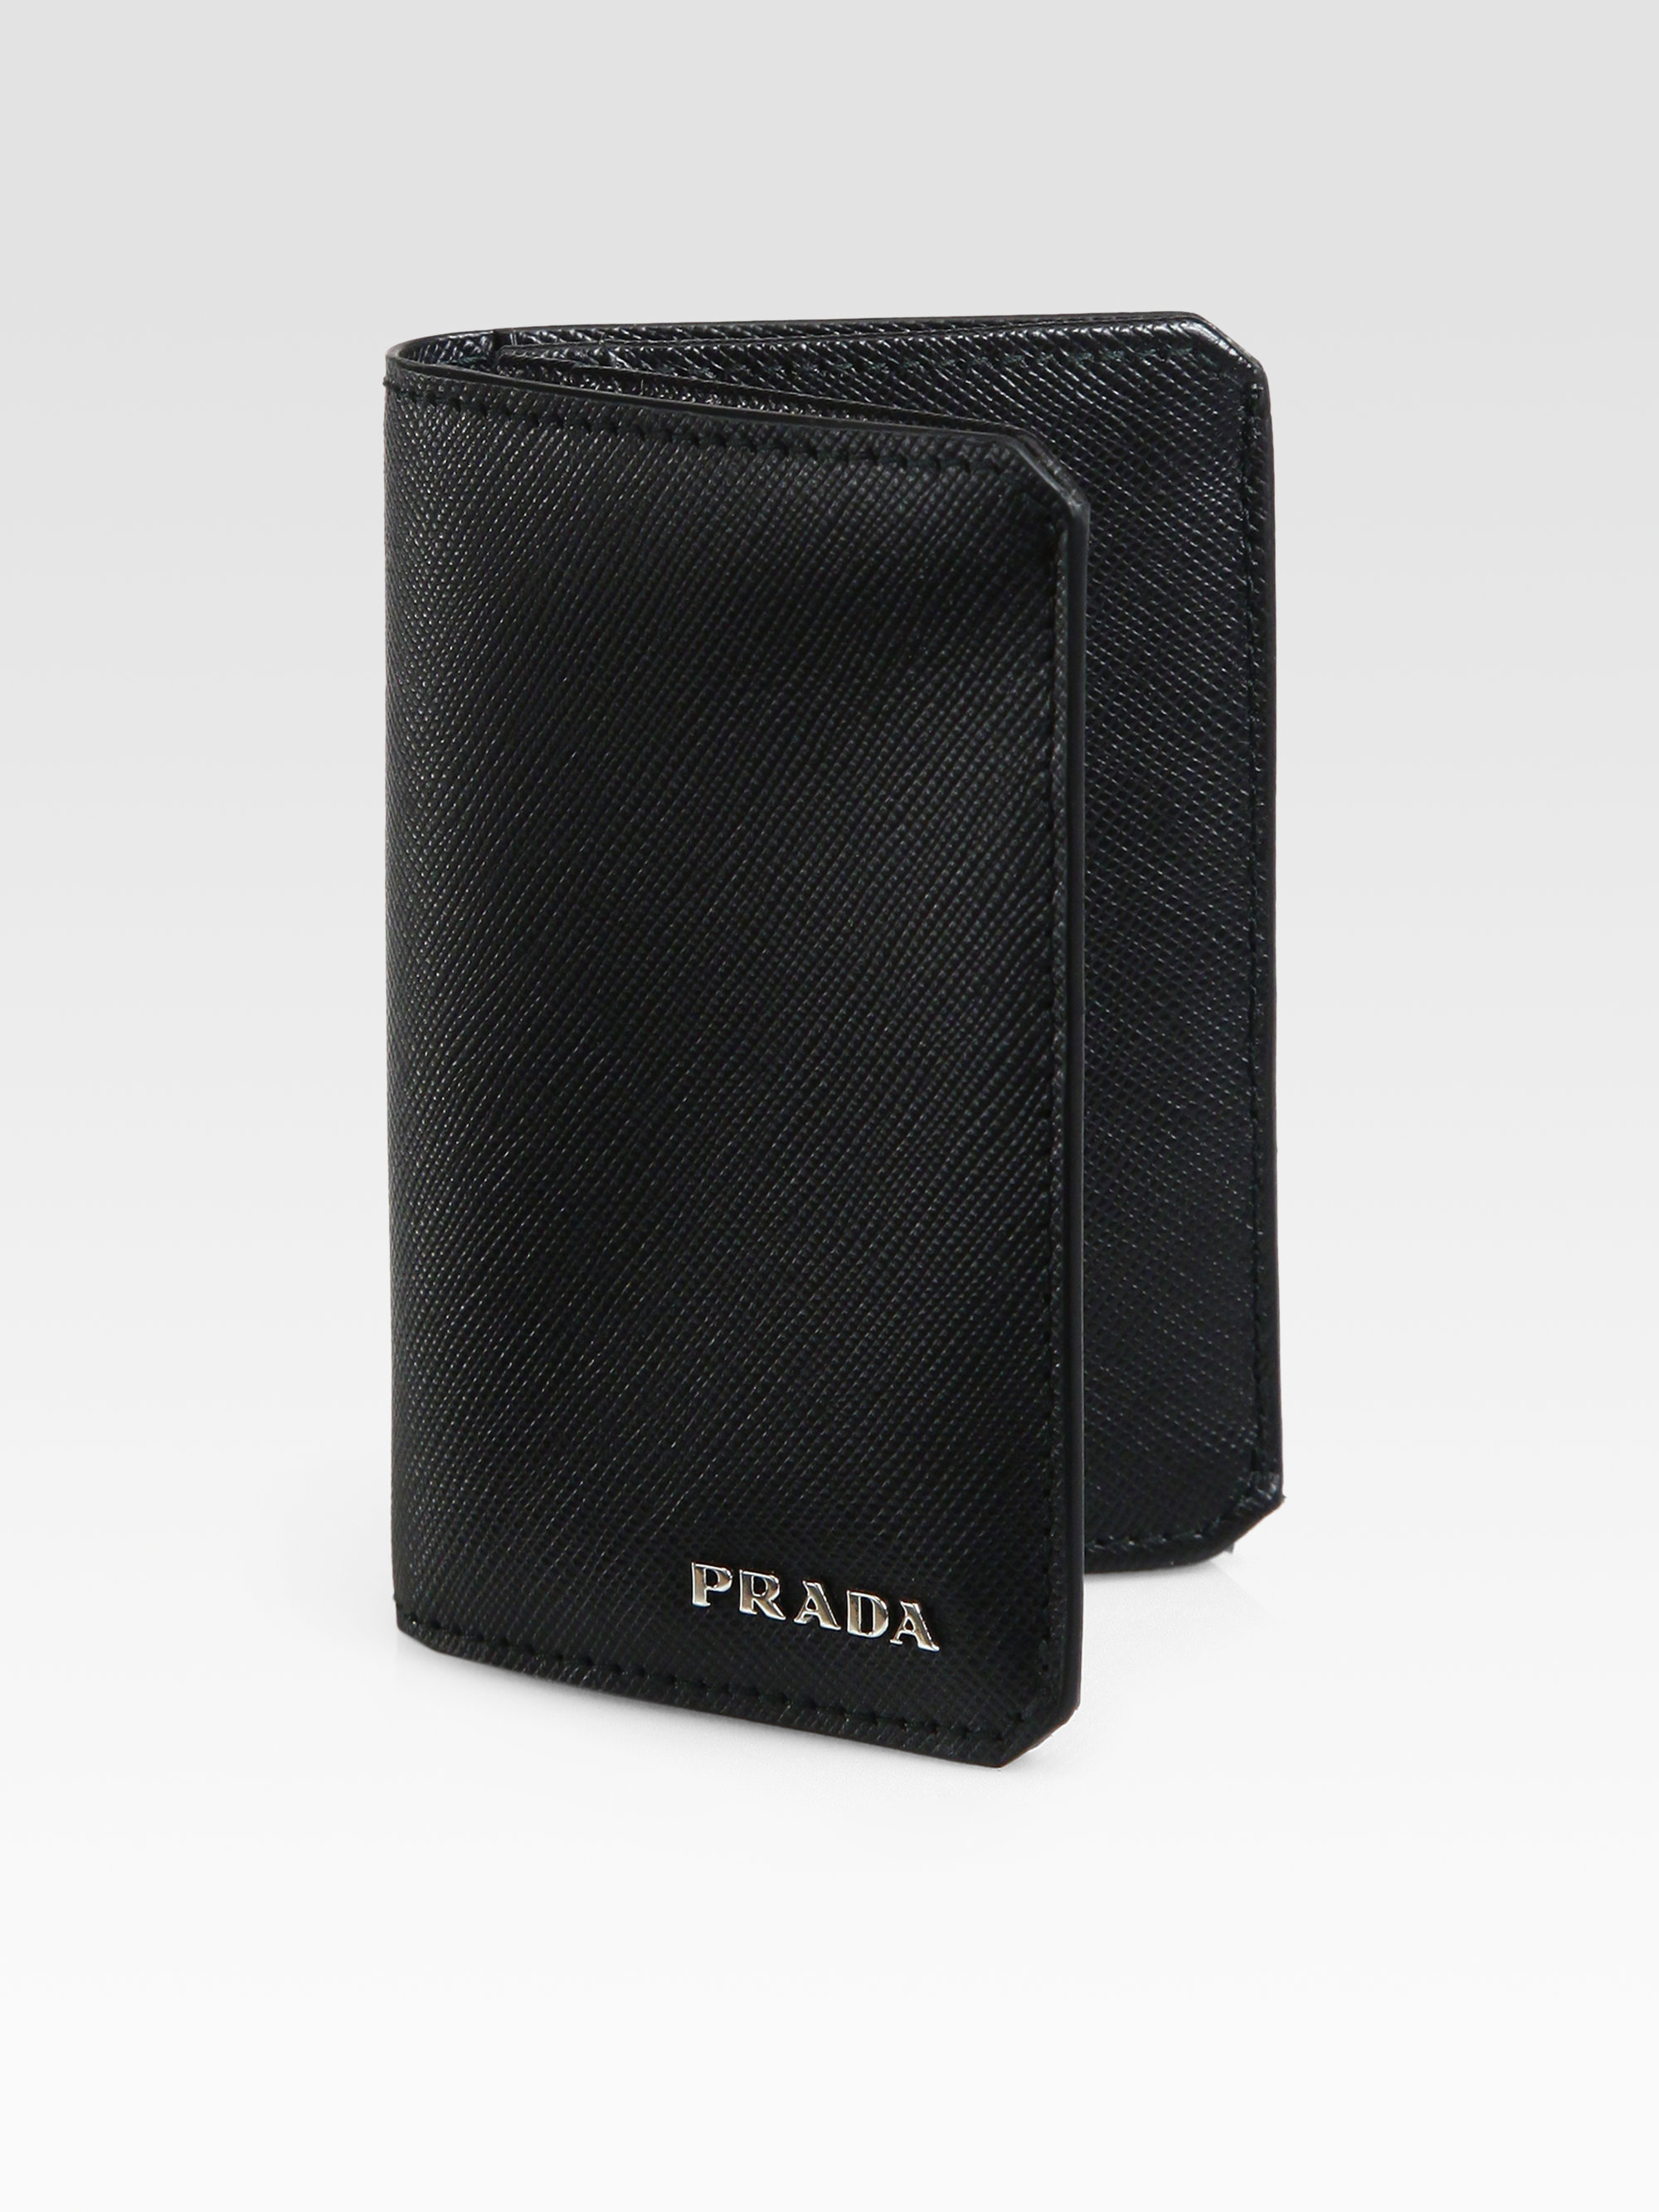 2ad47f39ea49 Prada Saffiano Leather Credit Card Case in Black for Men - Lyst